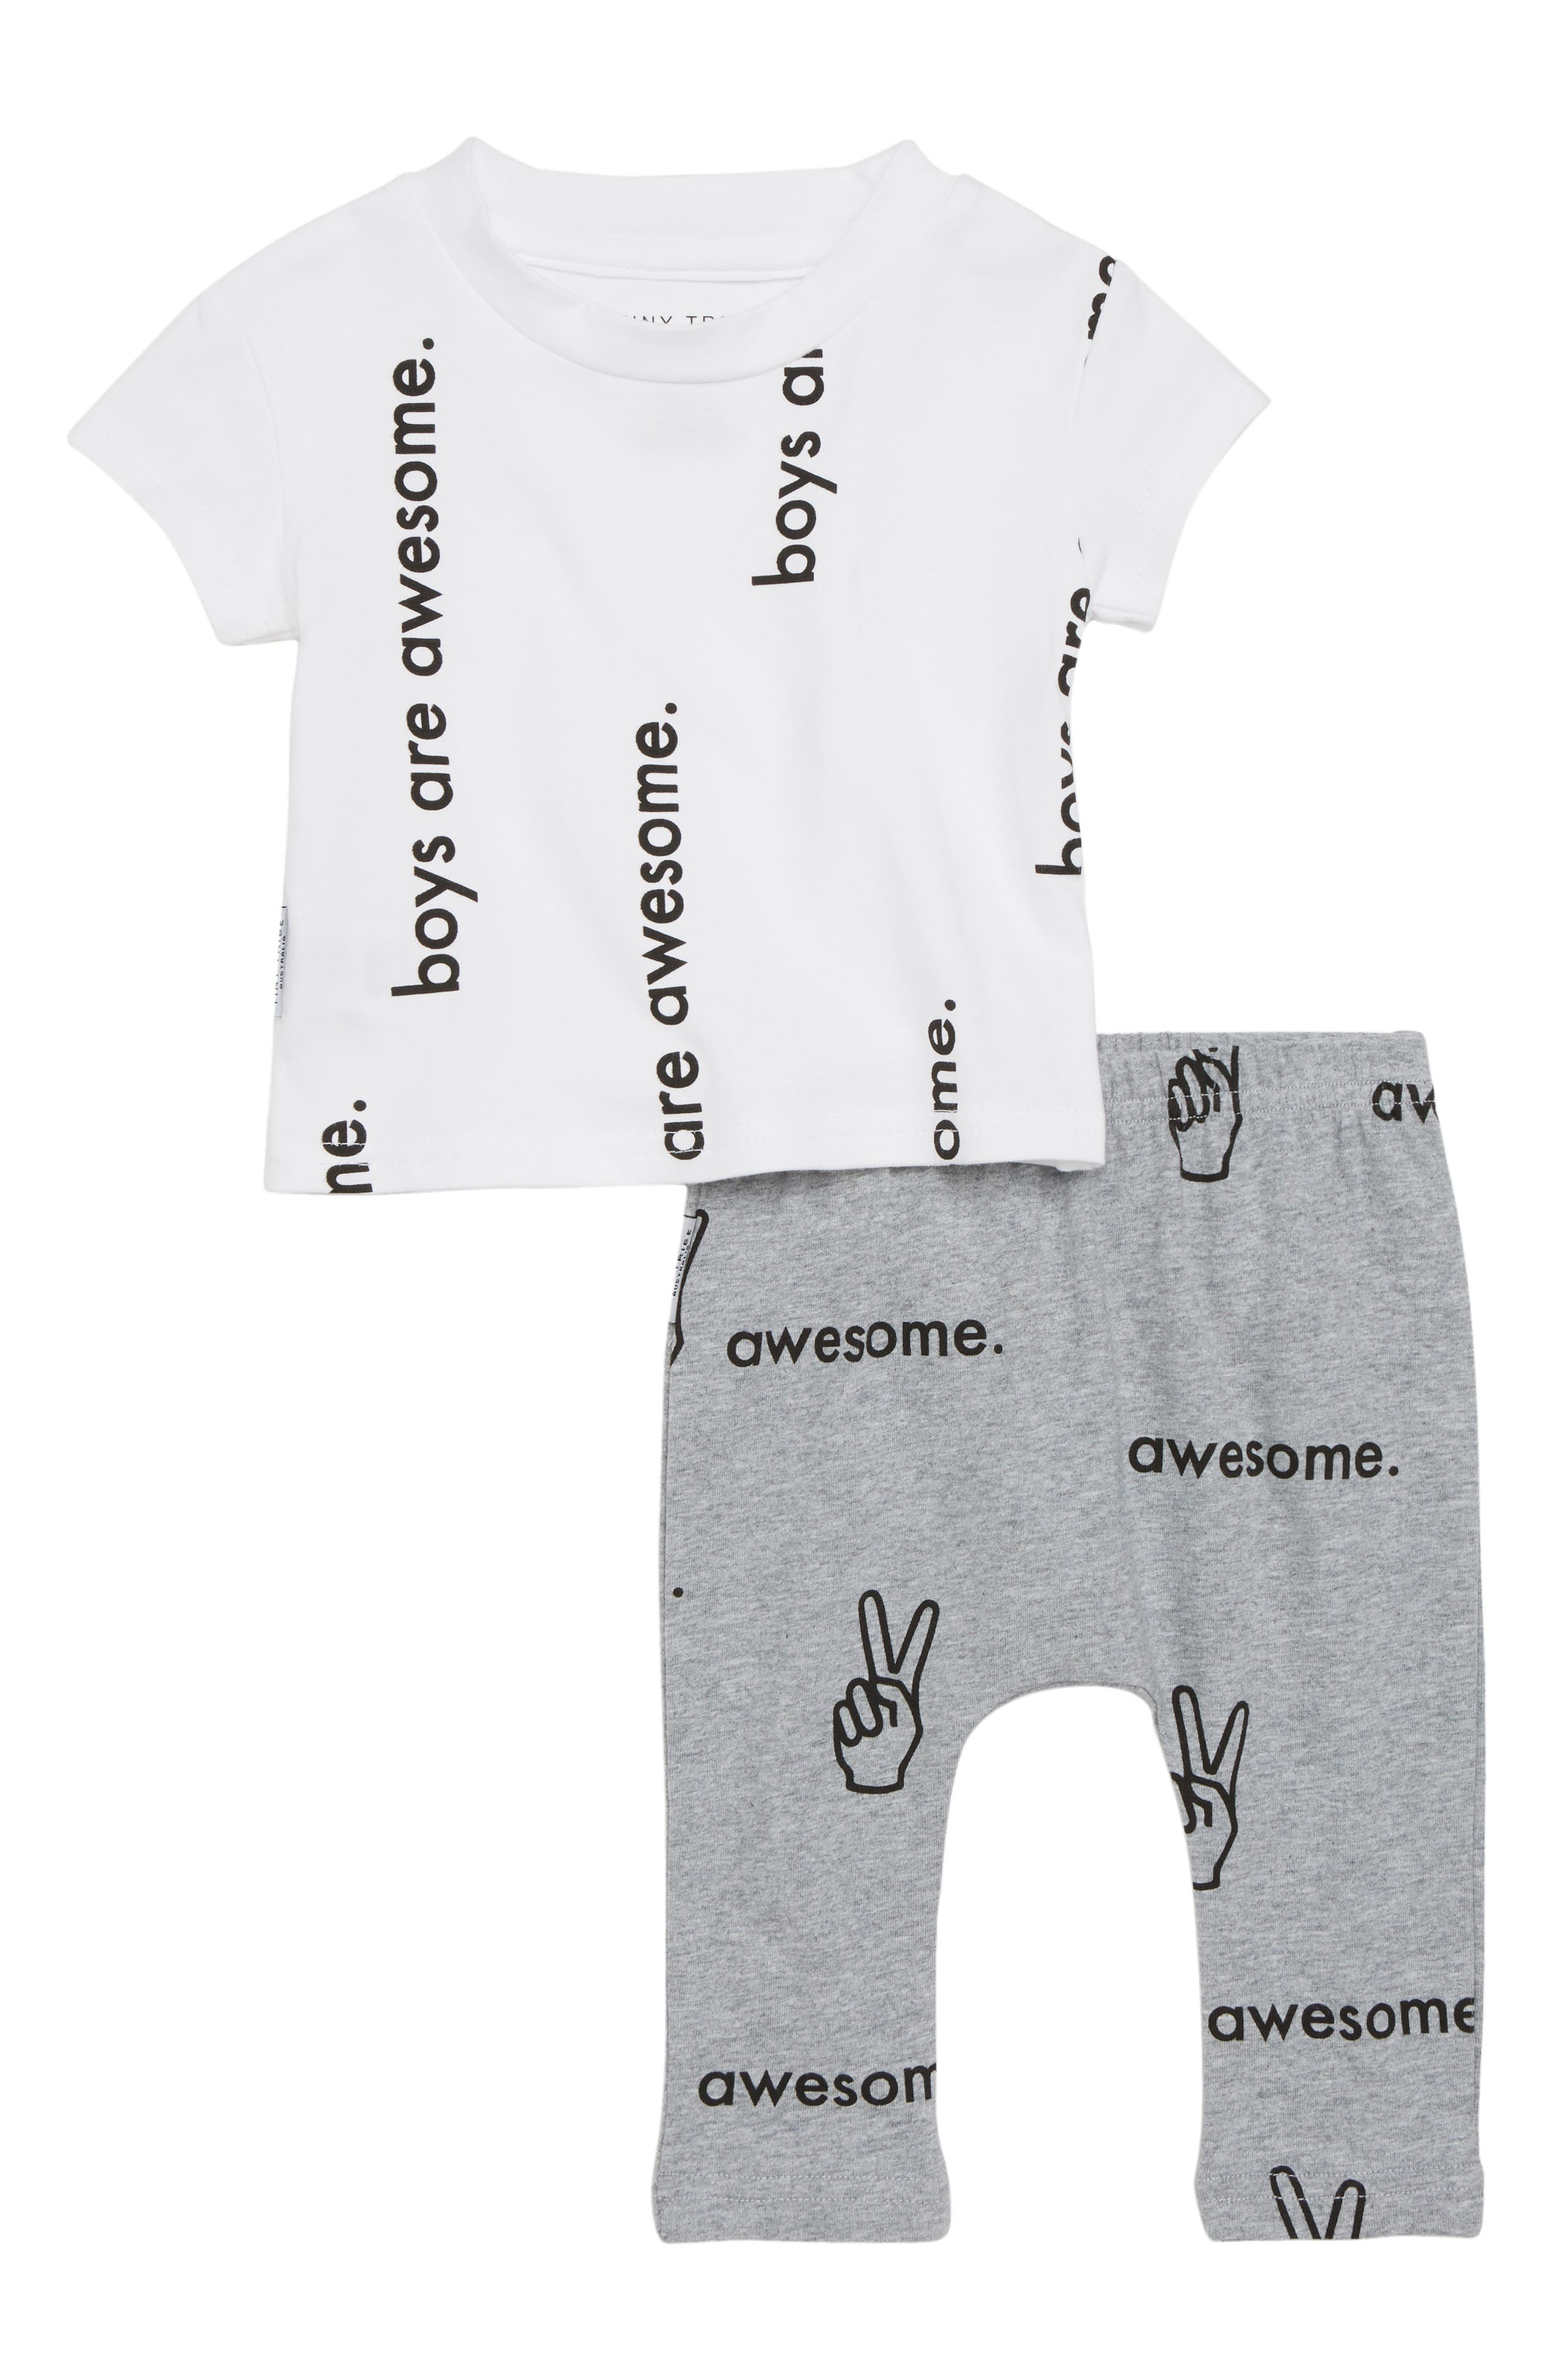 Boys are Awesome Graphic T-Shirt & Pants Set,                         Main,                         color, 109